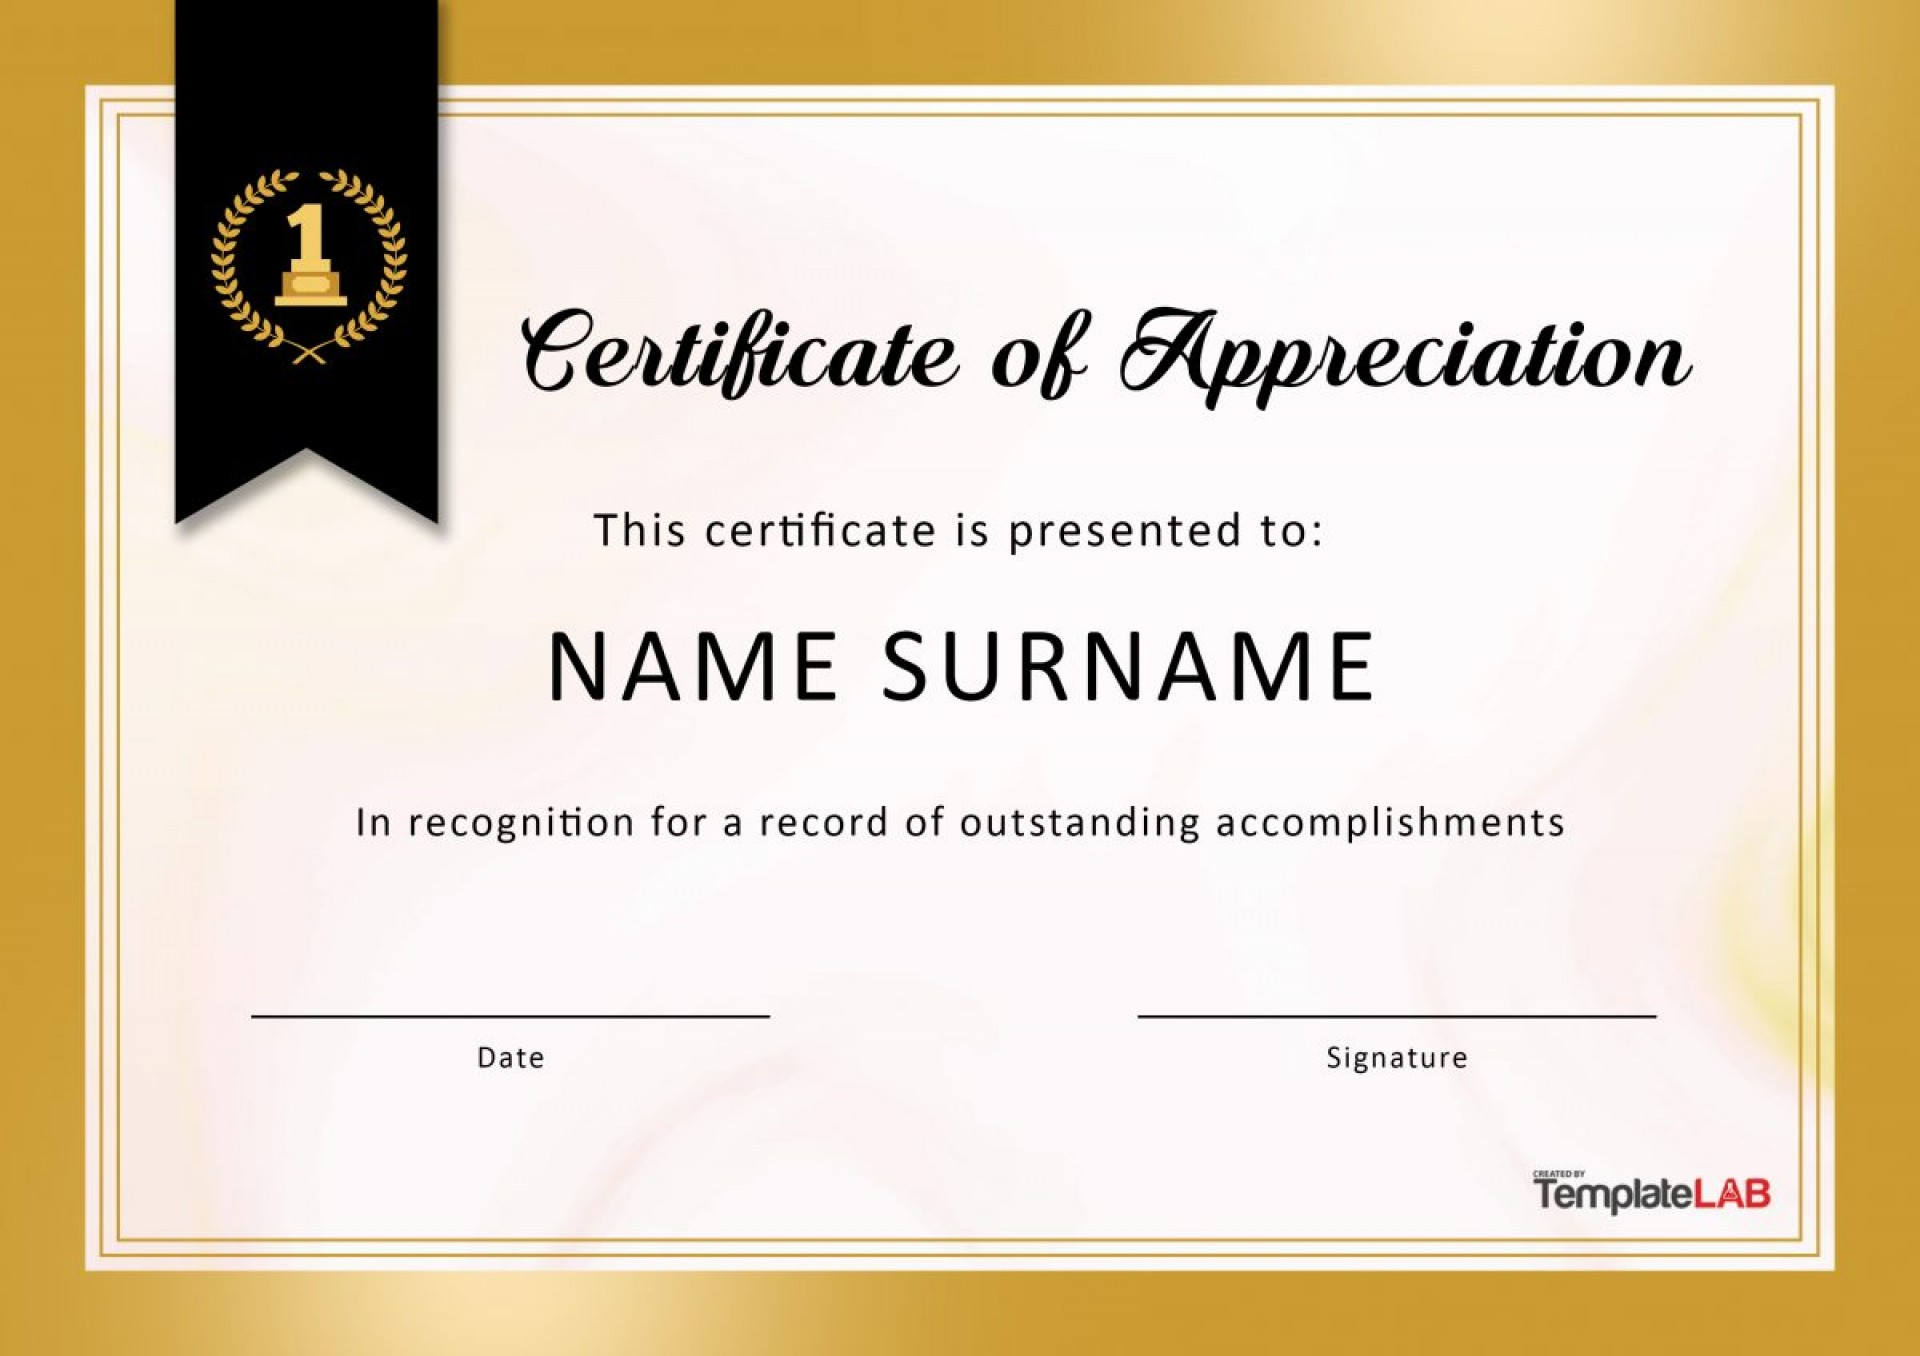 Certificate Of Appreciation Word Template from www.addictionary.org